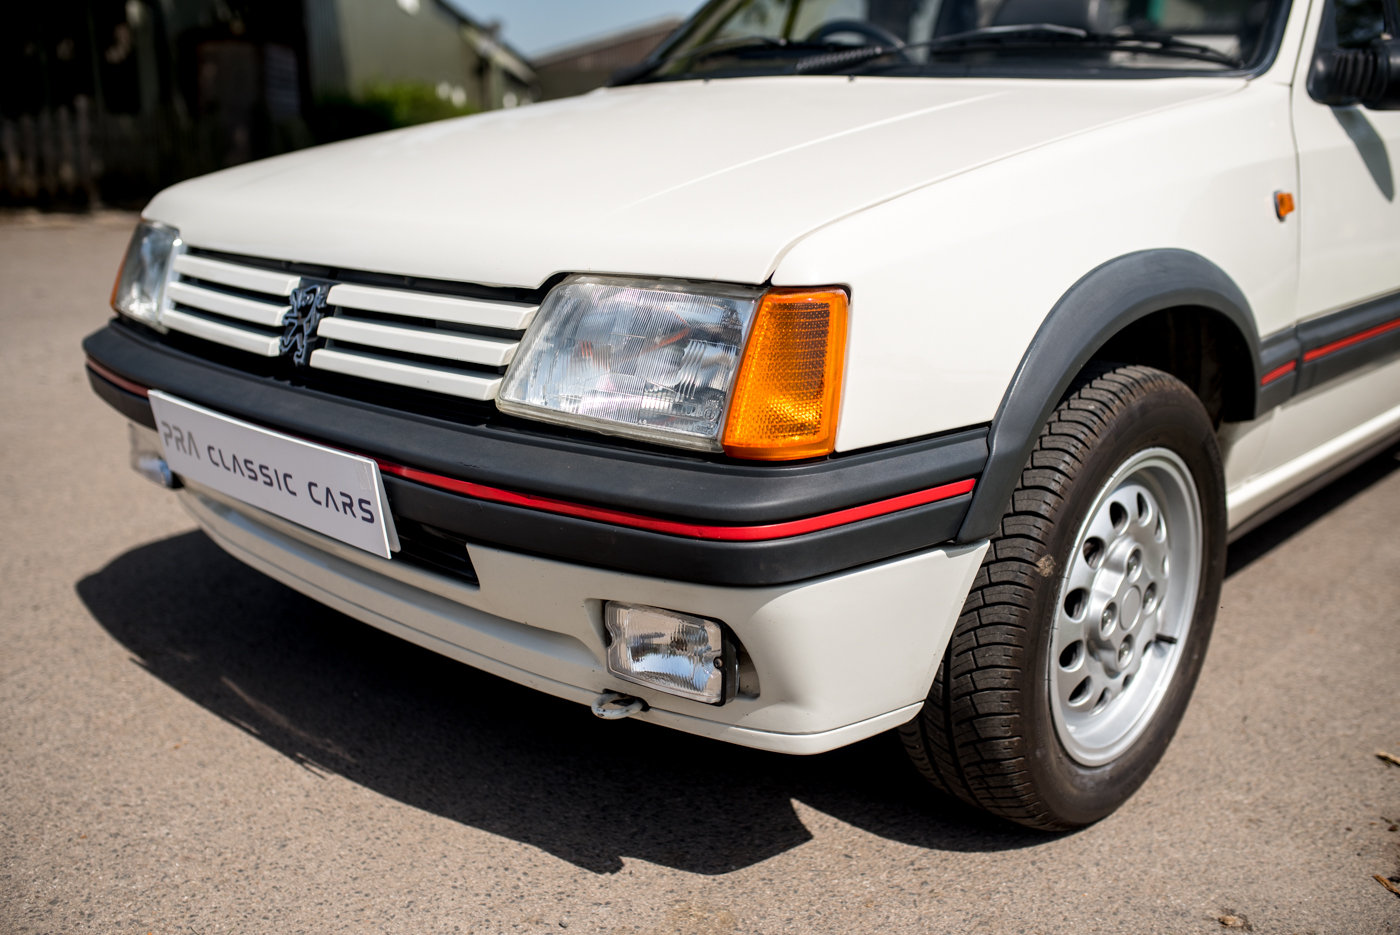 1988 Peugeot 205 CTI 1.6 Convertible For Sale (picture 4 of 6)